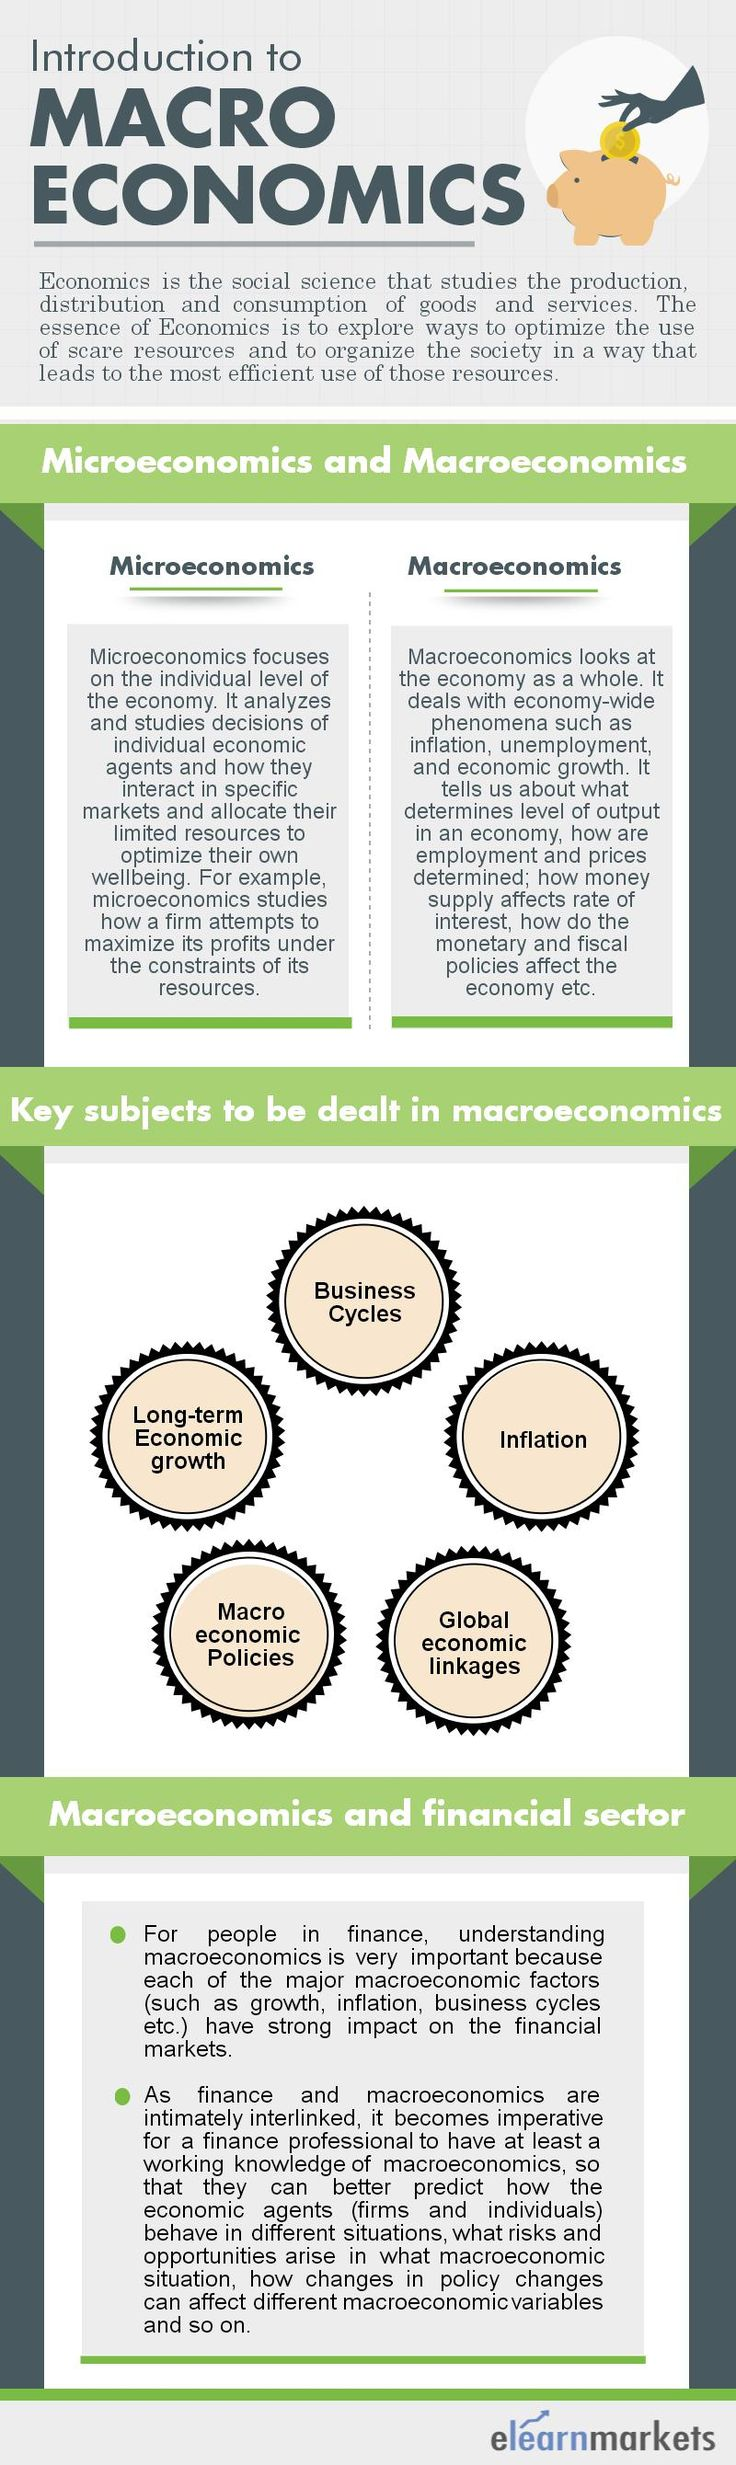 This pin gives a brief idea on macro economics and the key areas to be dealt in macro economics.